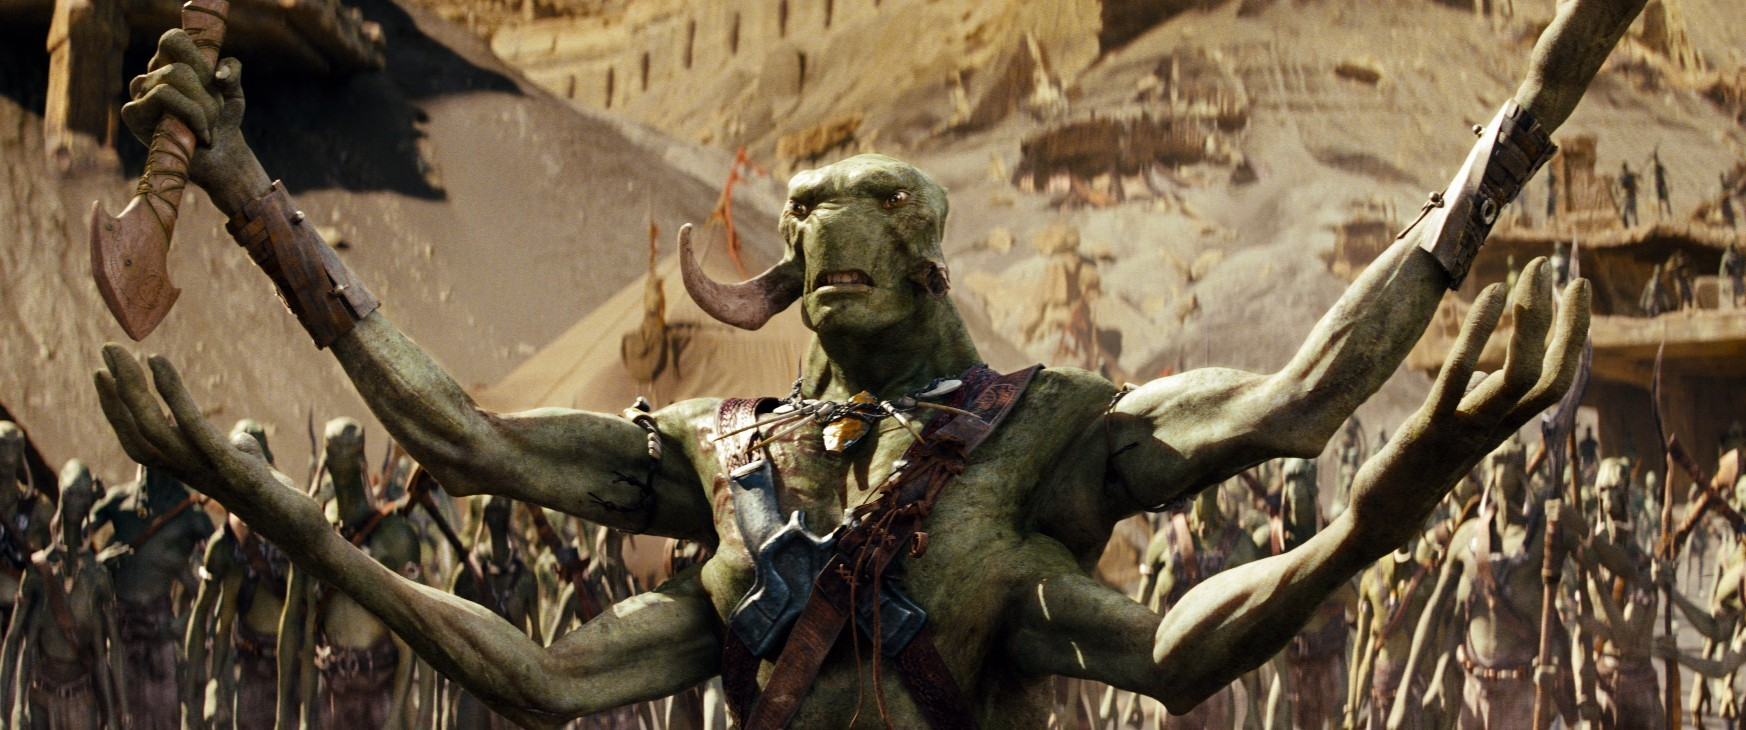 Green-skinned Tharks in John Carter (2012)